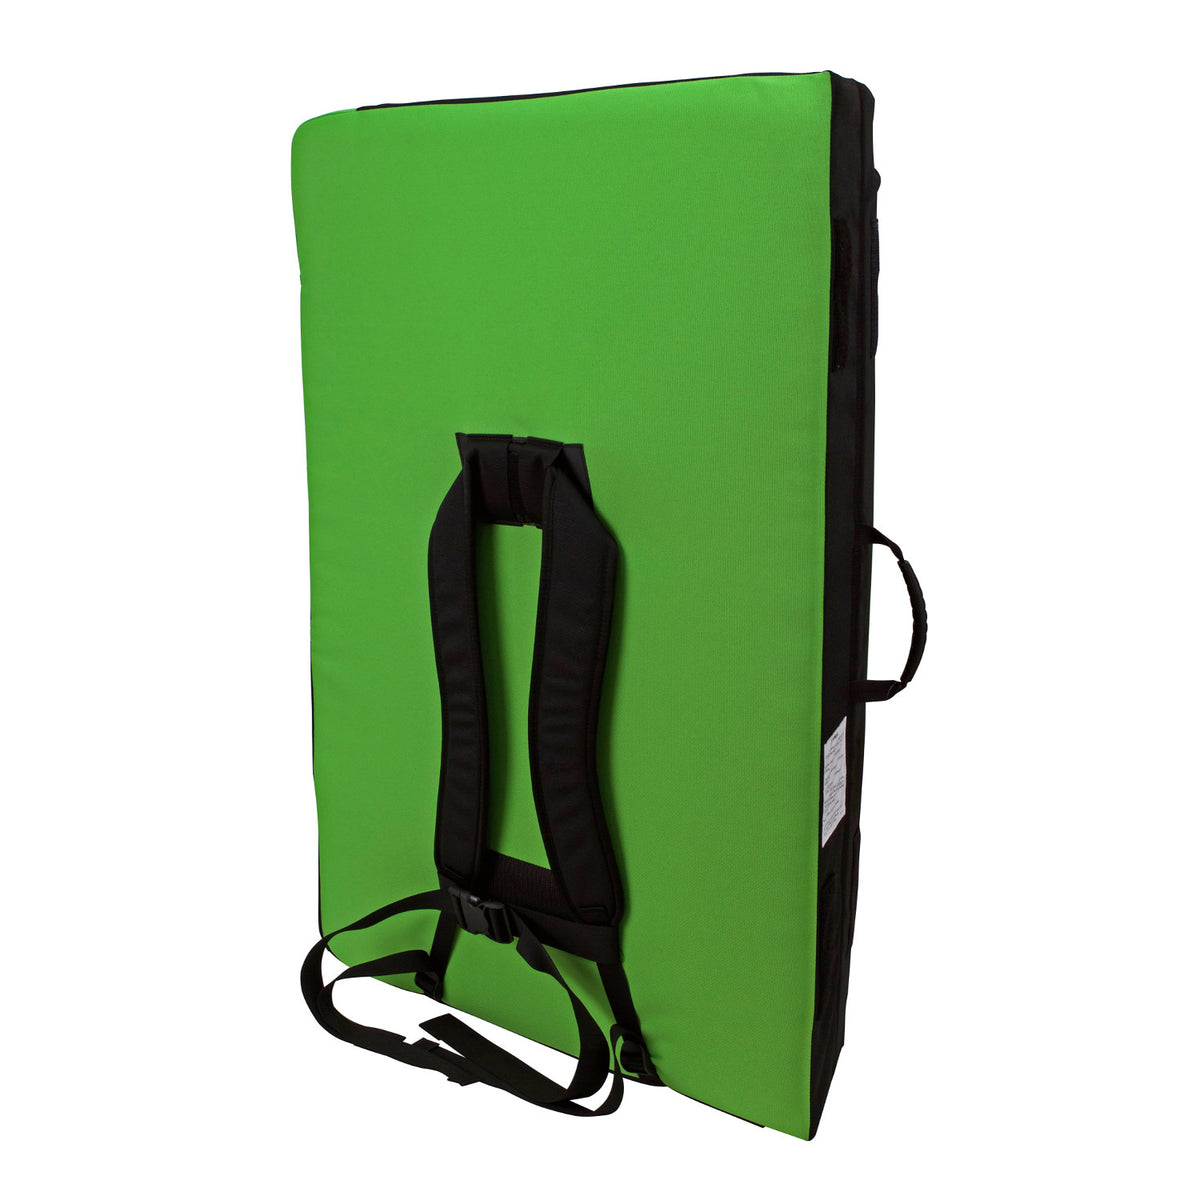 Metolius Session II crash pad, showing reverse side with shoulder straps